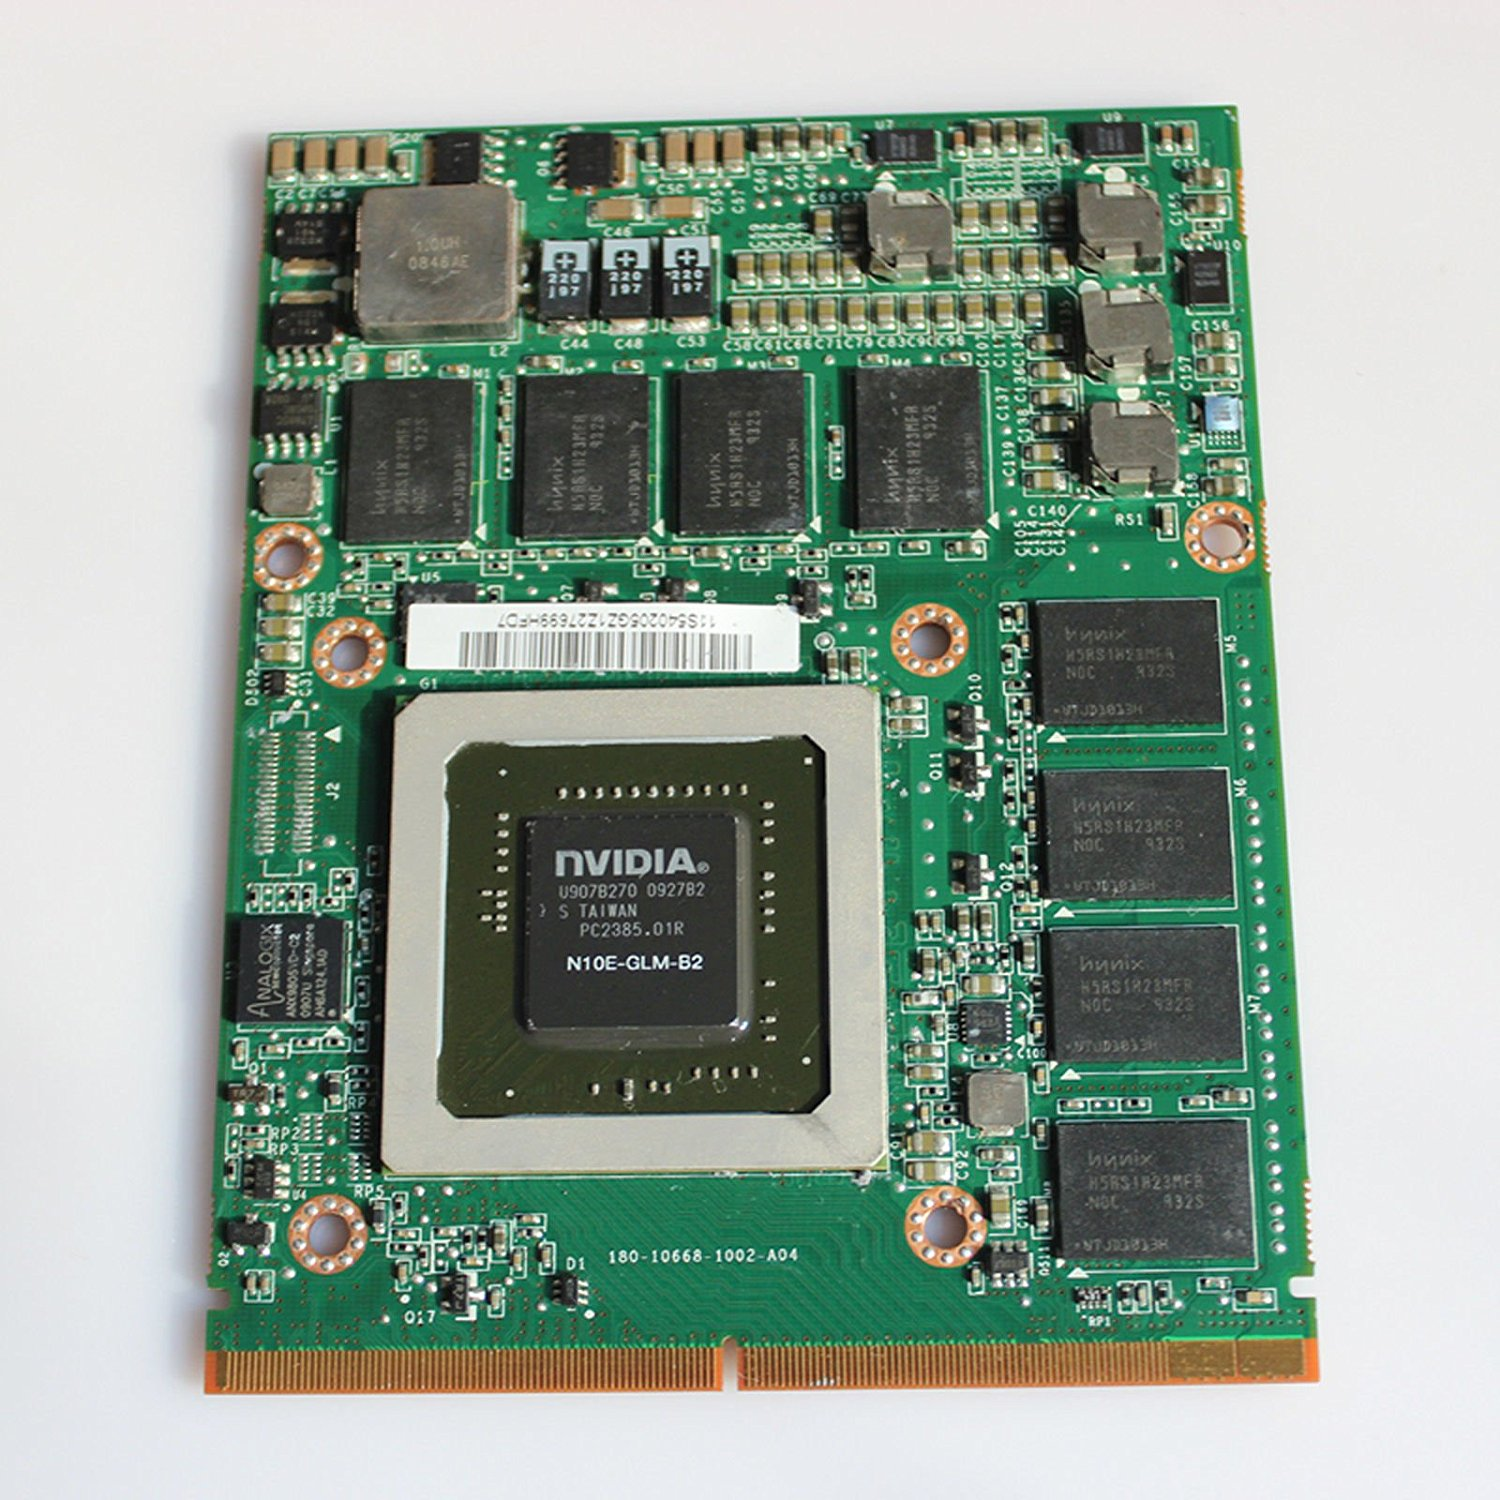 HP Lenovo NVIDIA Quadro FX 2800M 1GB Laptop PC Video Graphic Card 505986-001 596062-001 for HP Elitebook 8740W